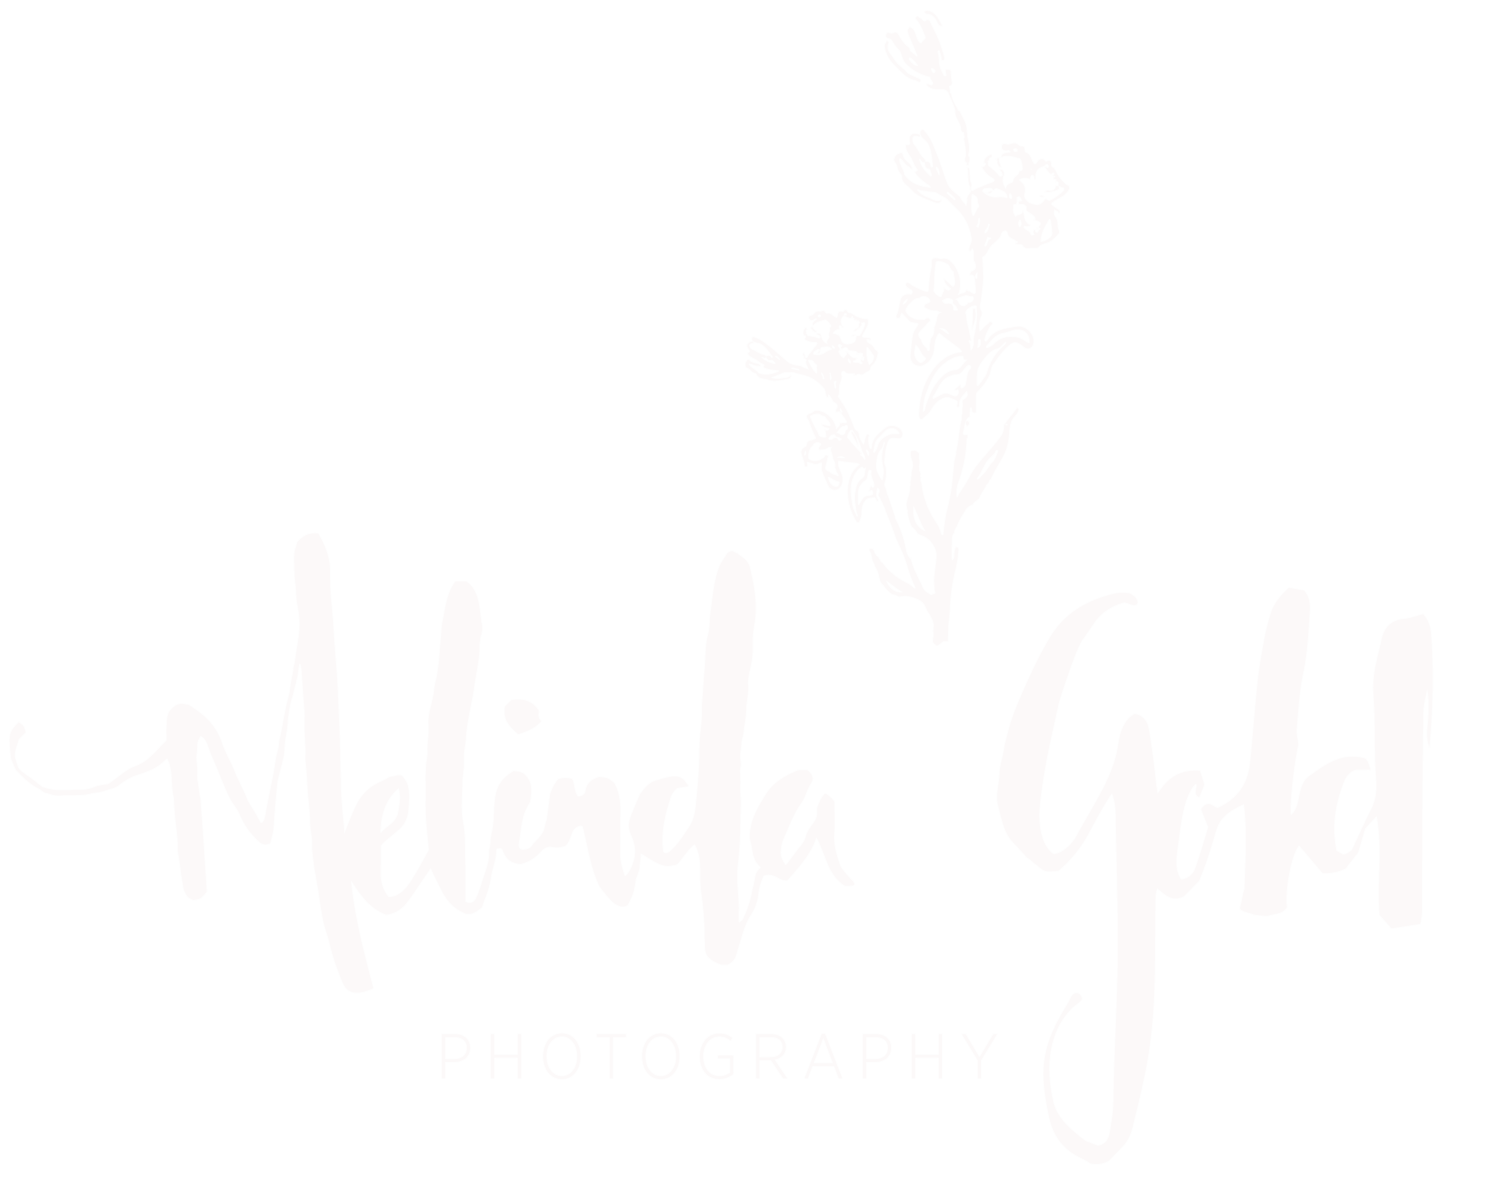 melinda gold photography